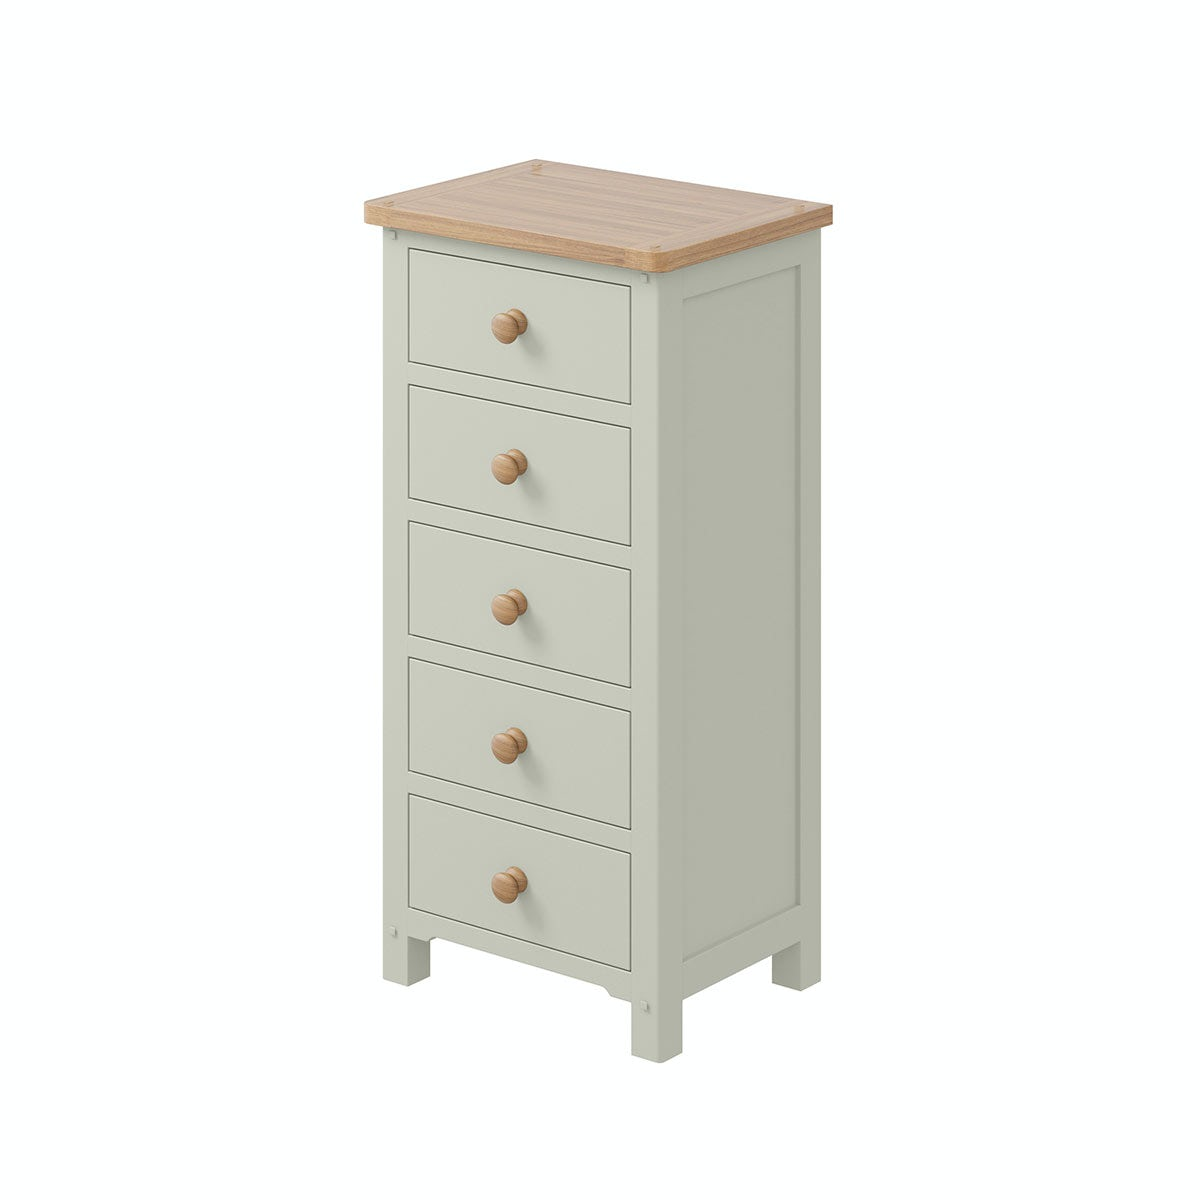 Rome Oak & Grey 5 Drawer Tall Chest with Vanity Mirror in Oak & Grey